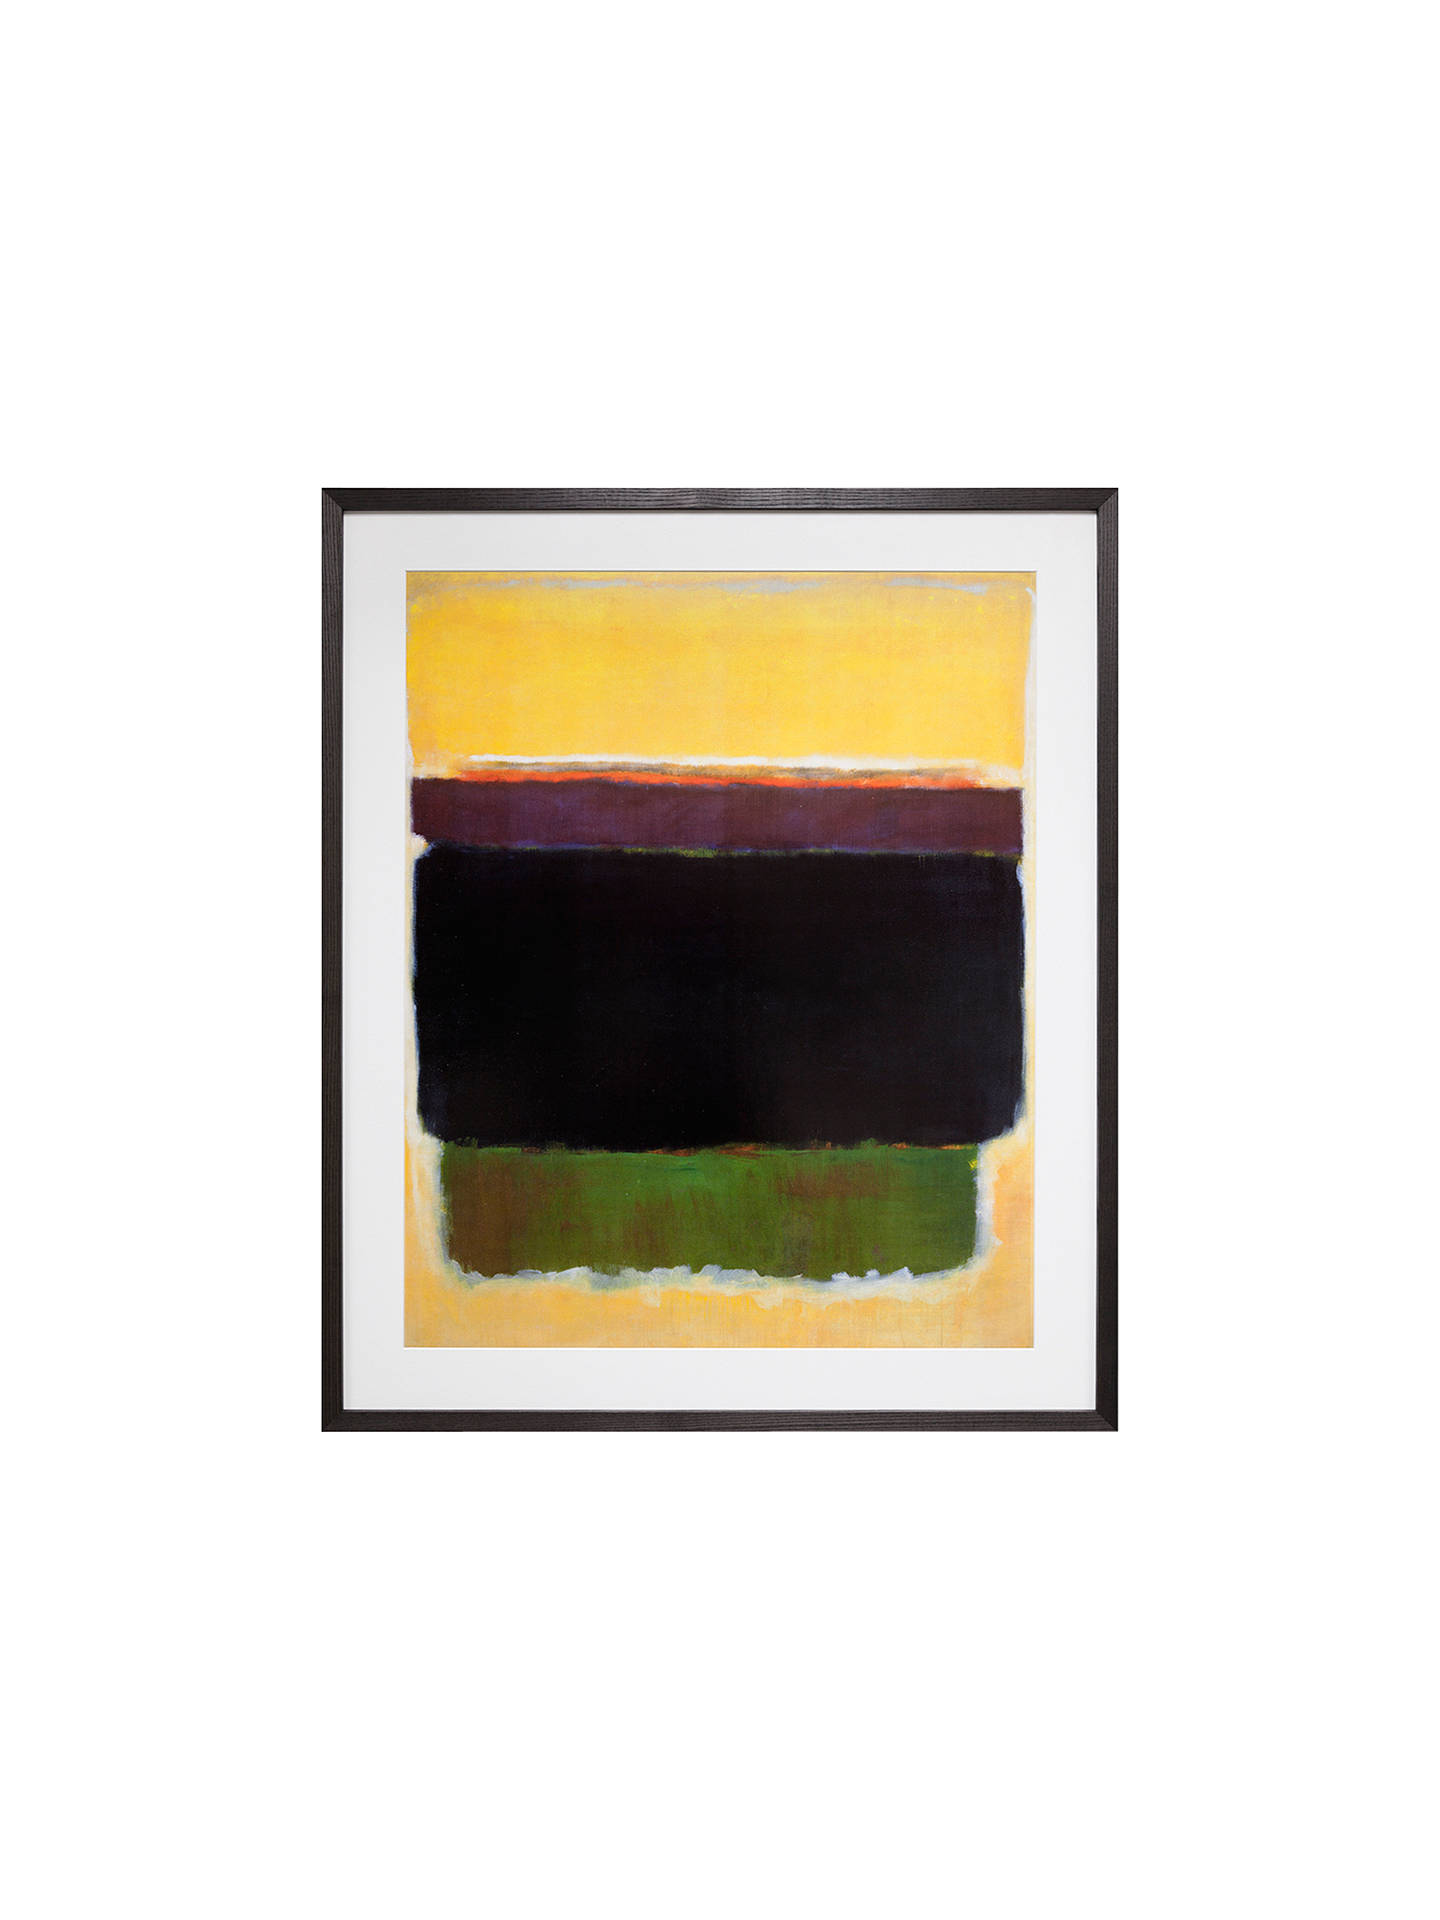 BuyRothko - Untitled 1949 Framed Print, 96.5 x 81cm Online at johnlewis.com